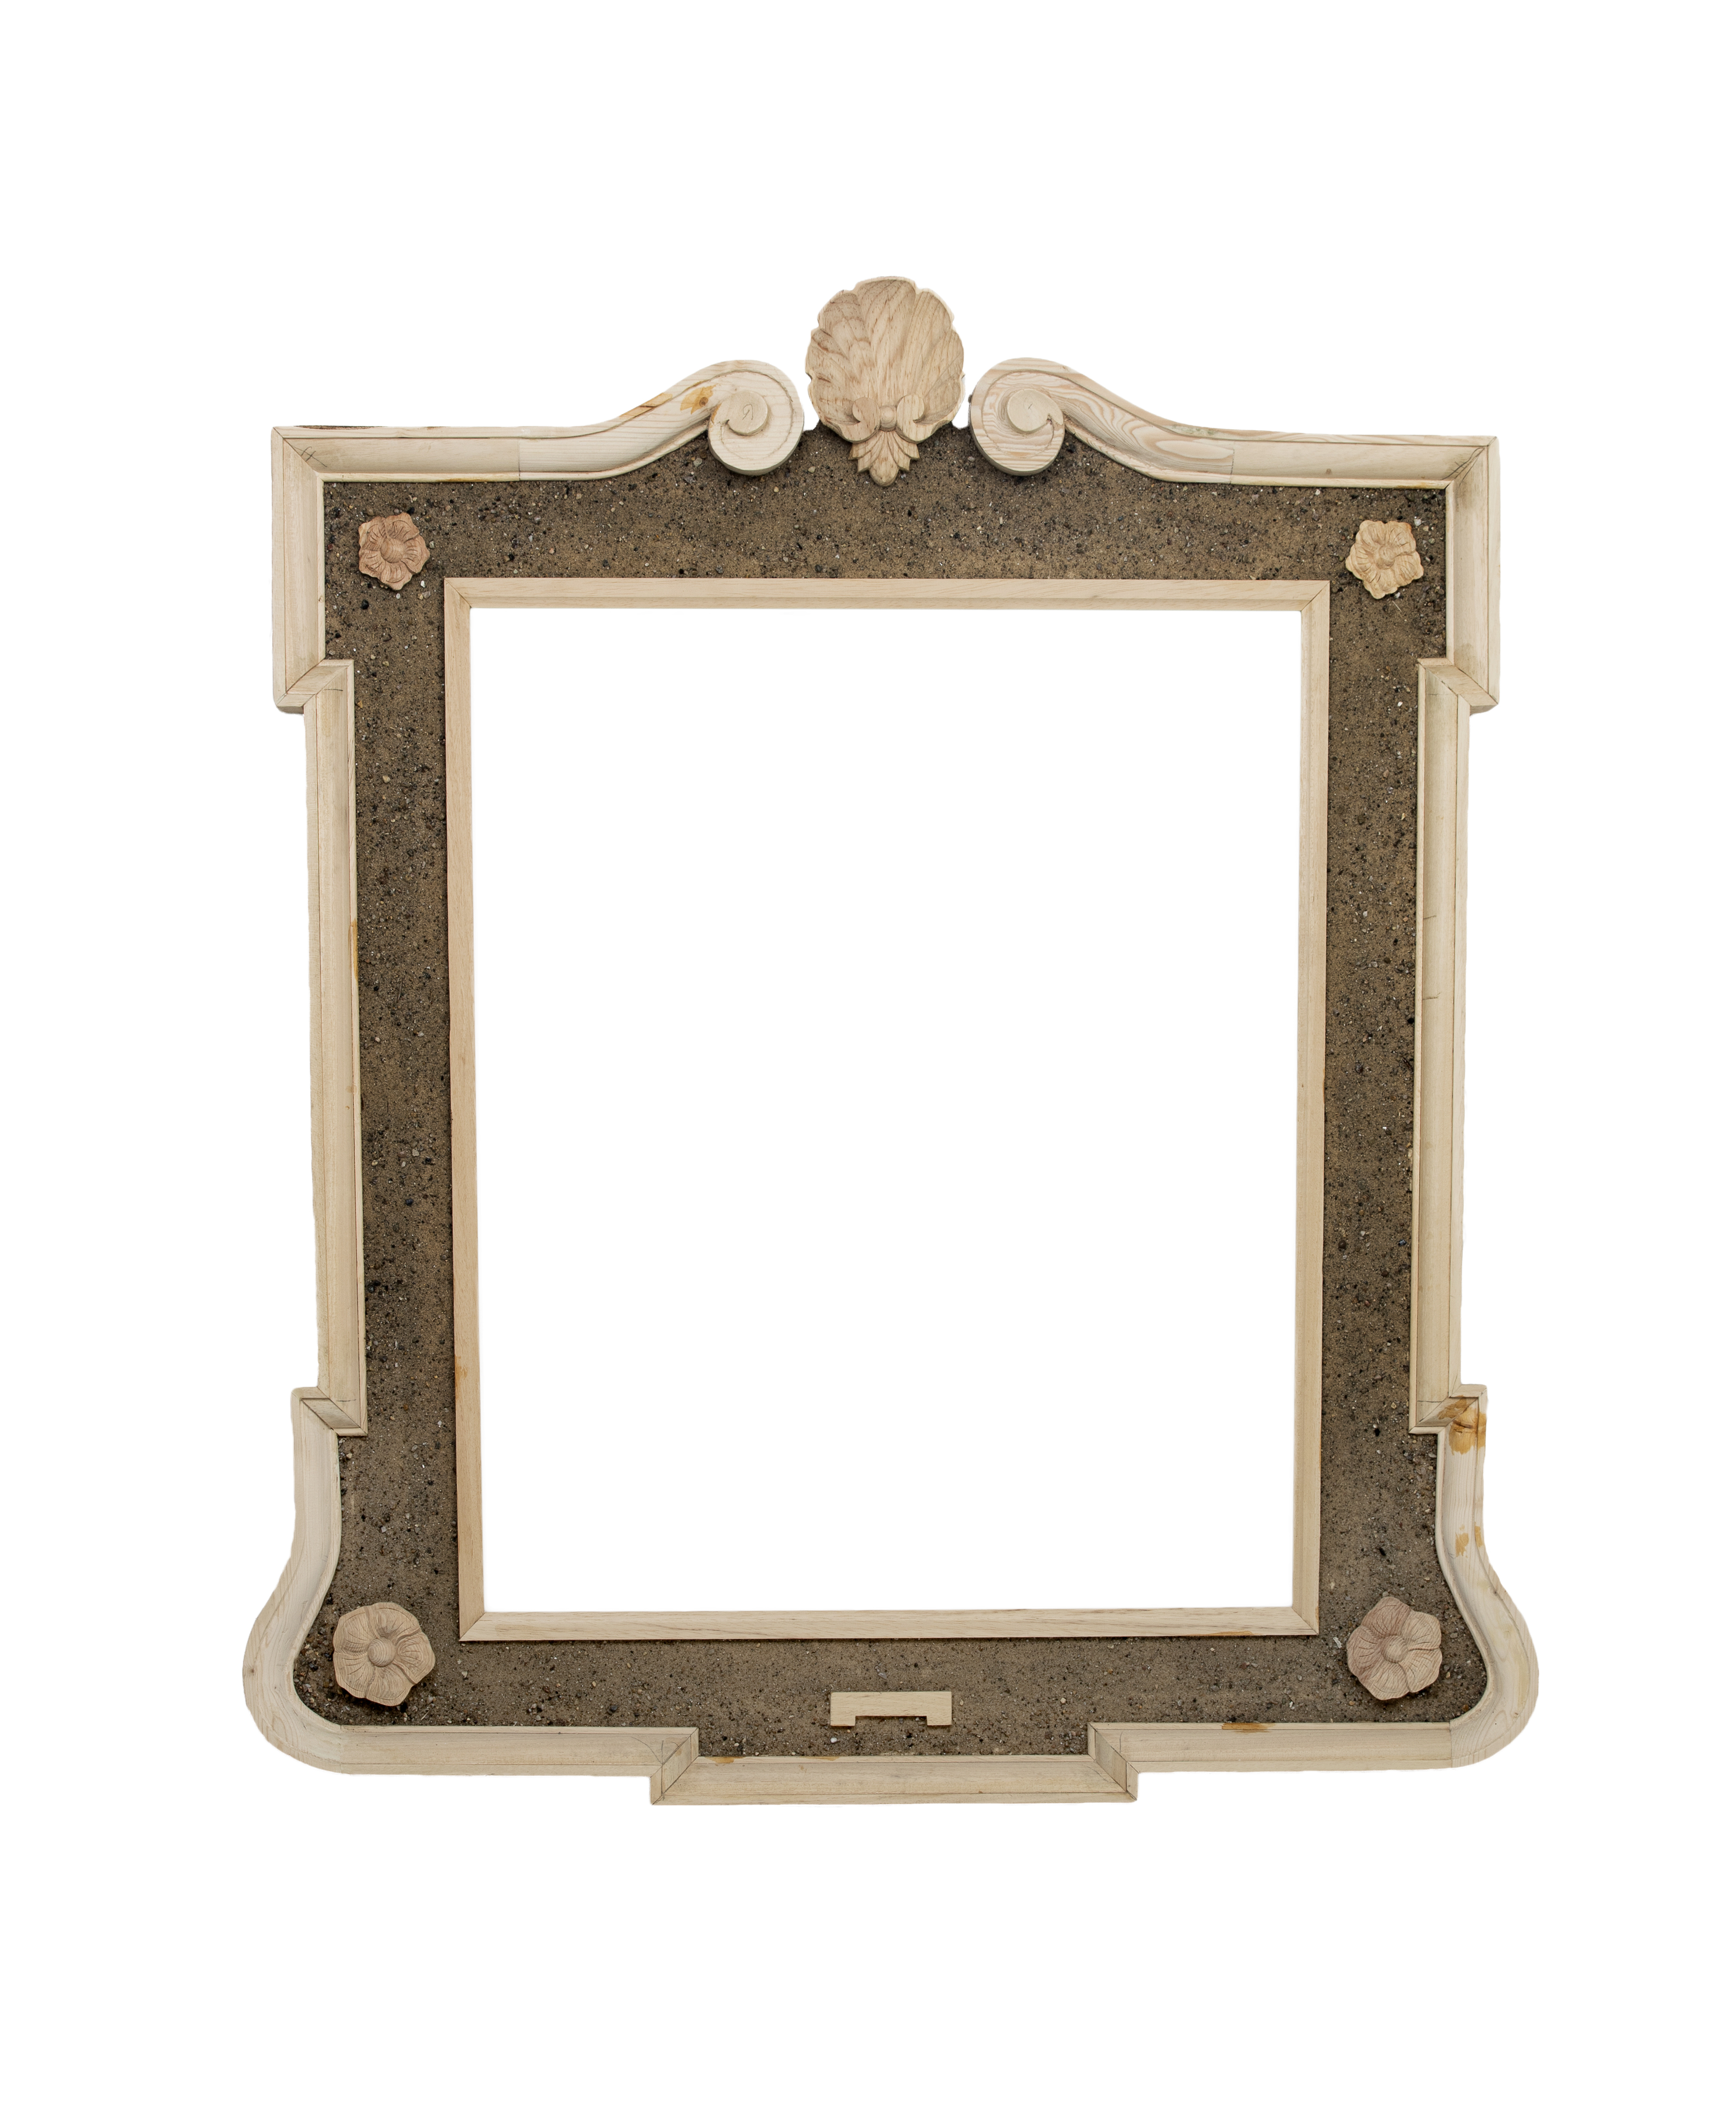 William-Kent-or-Palladian-picture-frame-Pat-Murray.jpg#asset:8187